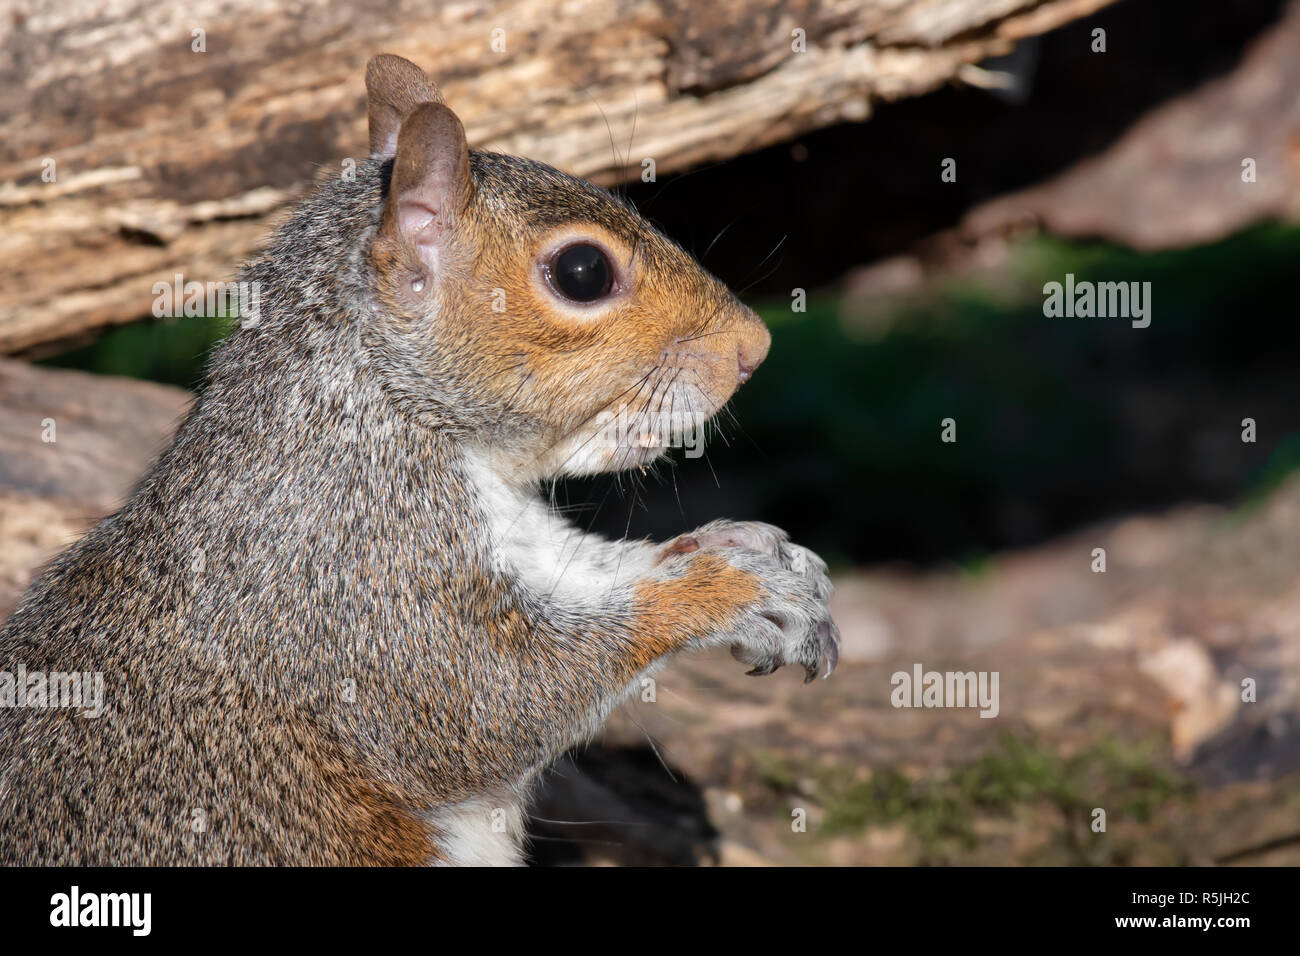 A very close half length profile portrait of a grey squirrel. It is staring intensely to the right. - Stock Image